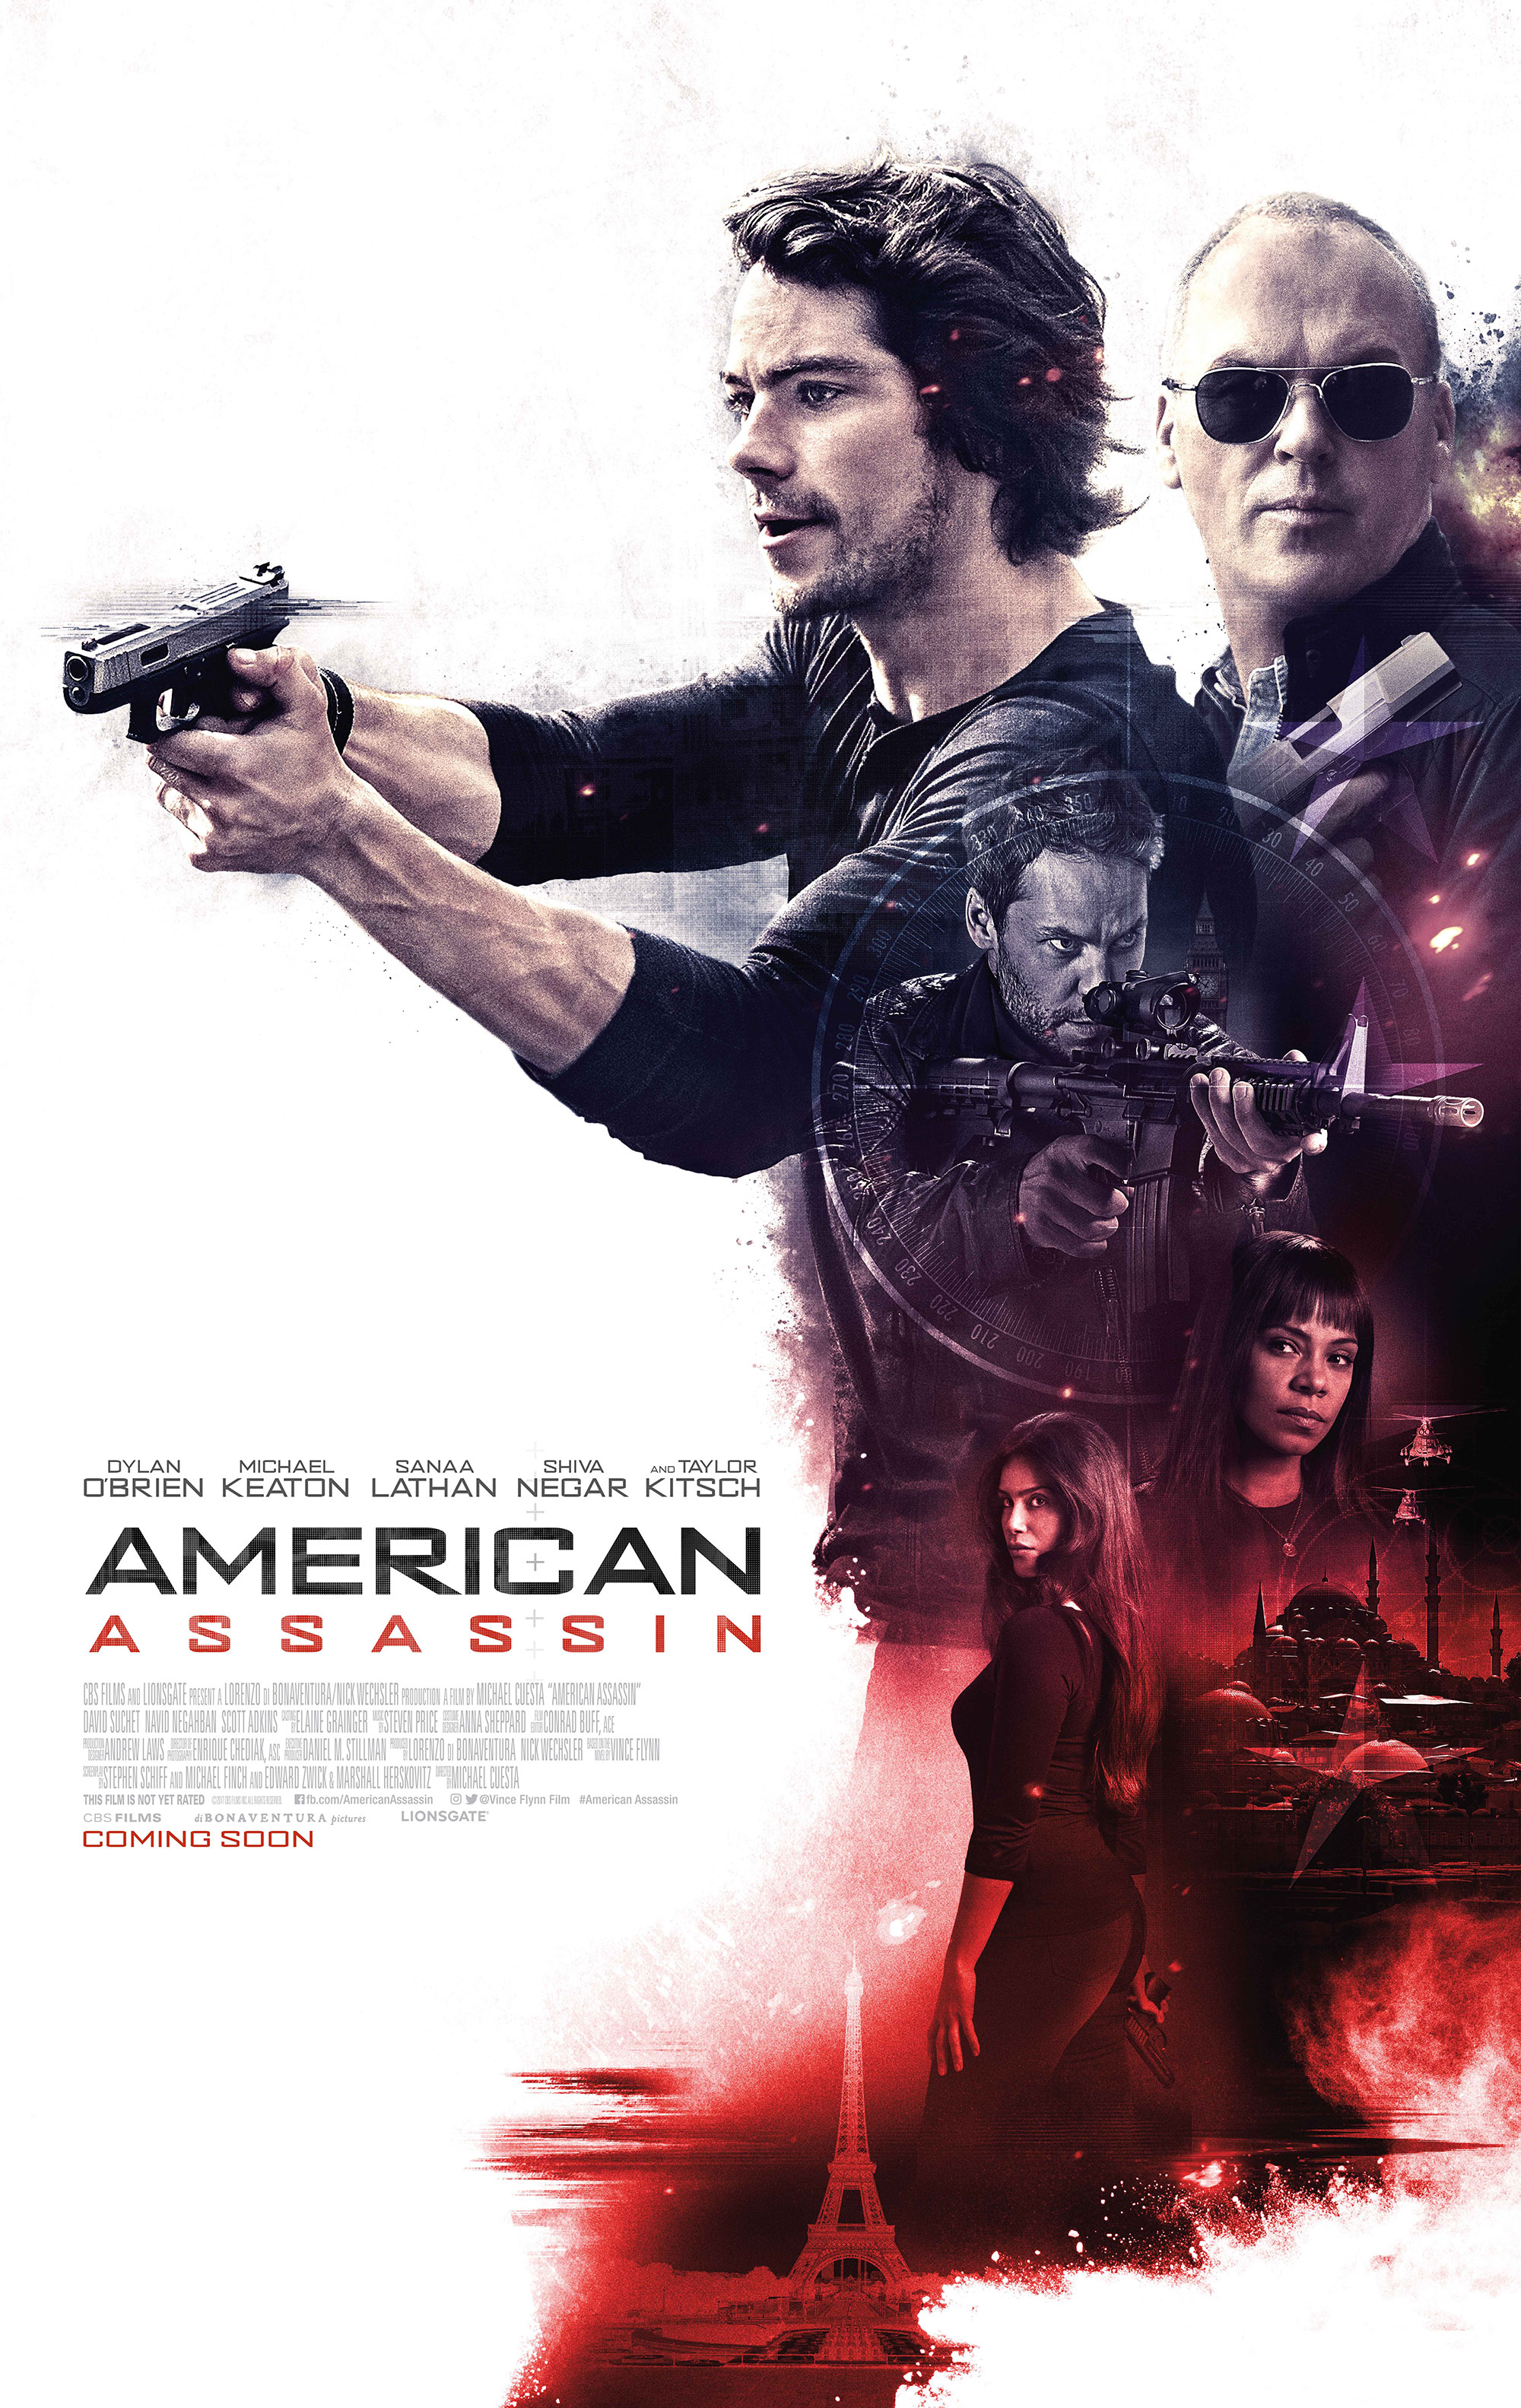 American-Assassin-Official-Poster-9